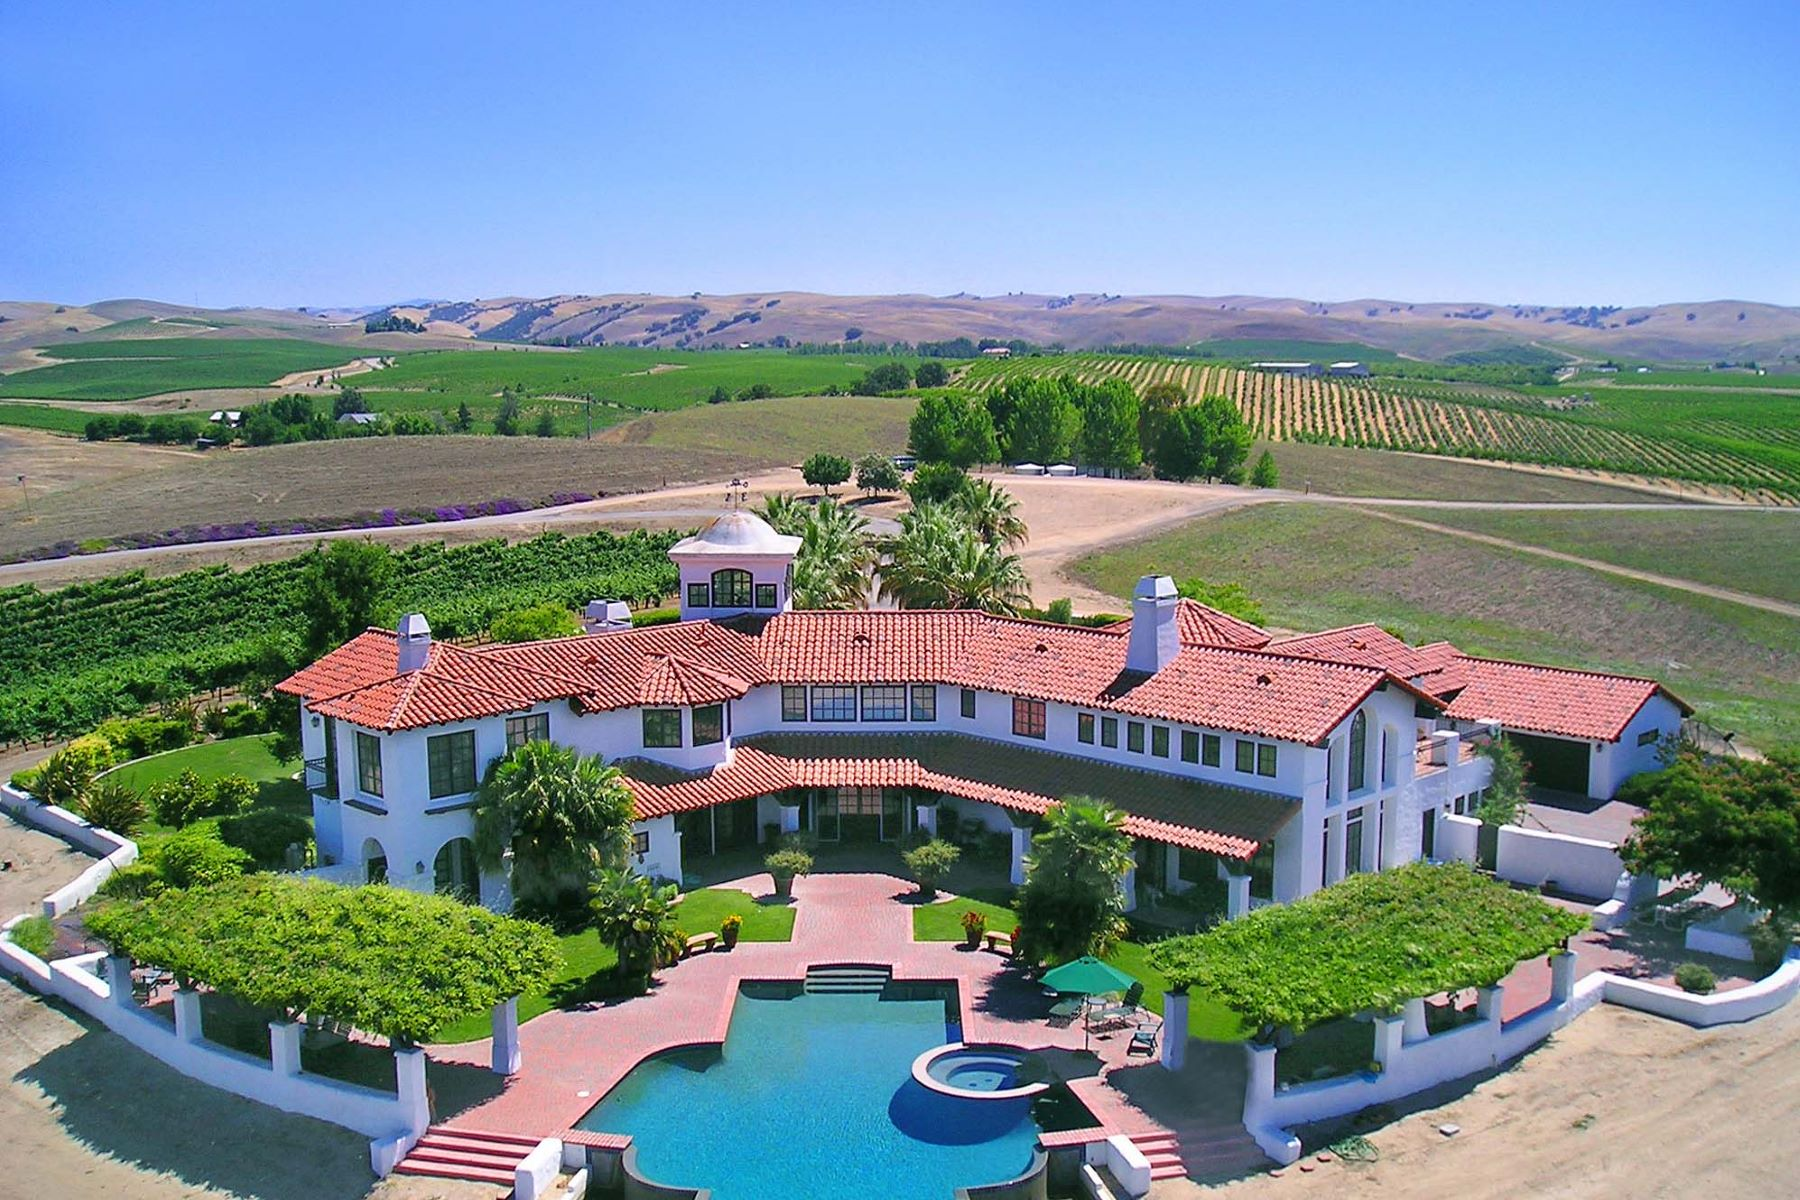 Terreno por un Venta en Breathtaking Vineyard Villa 6585 Von Dollen Rd. San Miguel, California, 93451 Estados Unidos